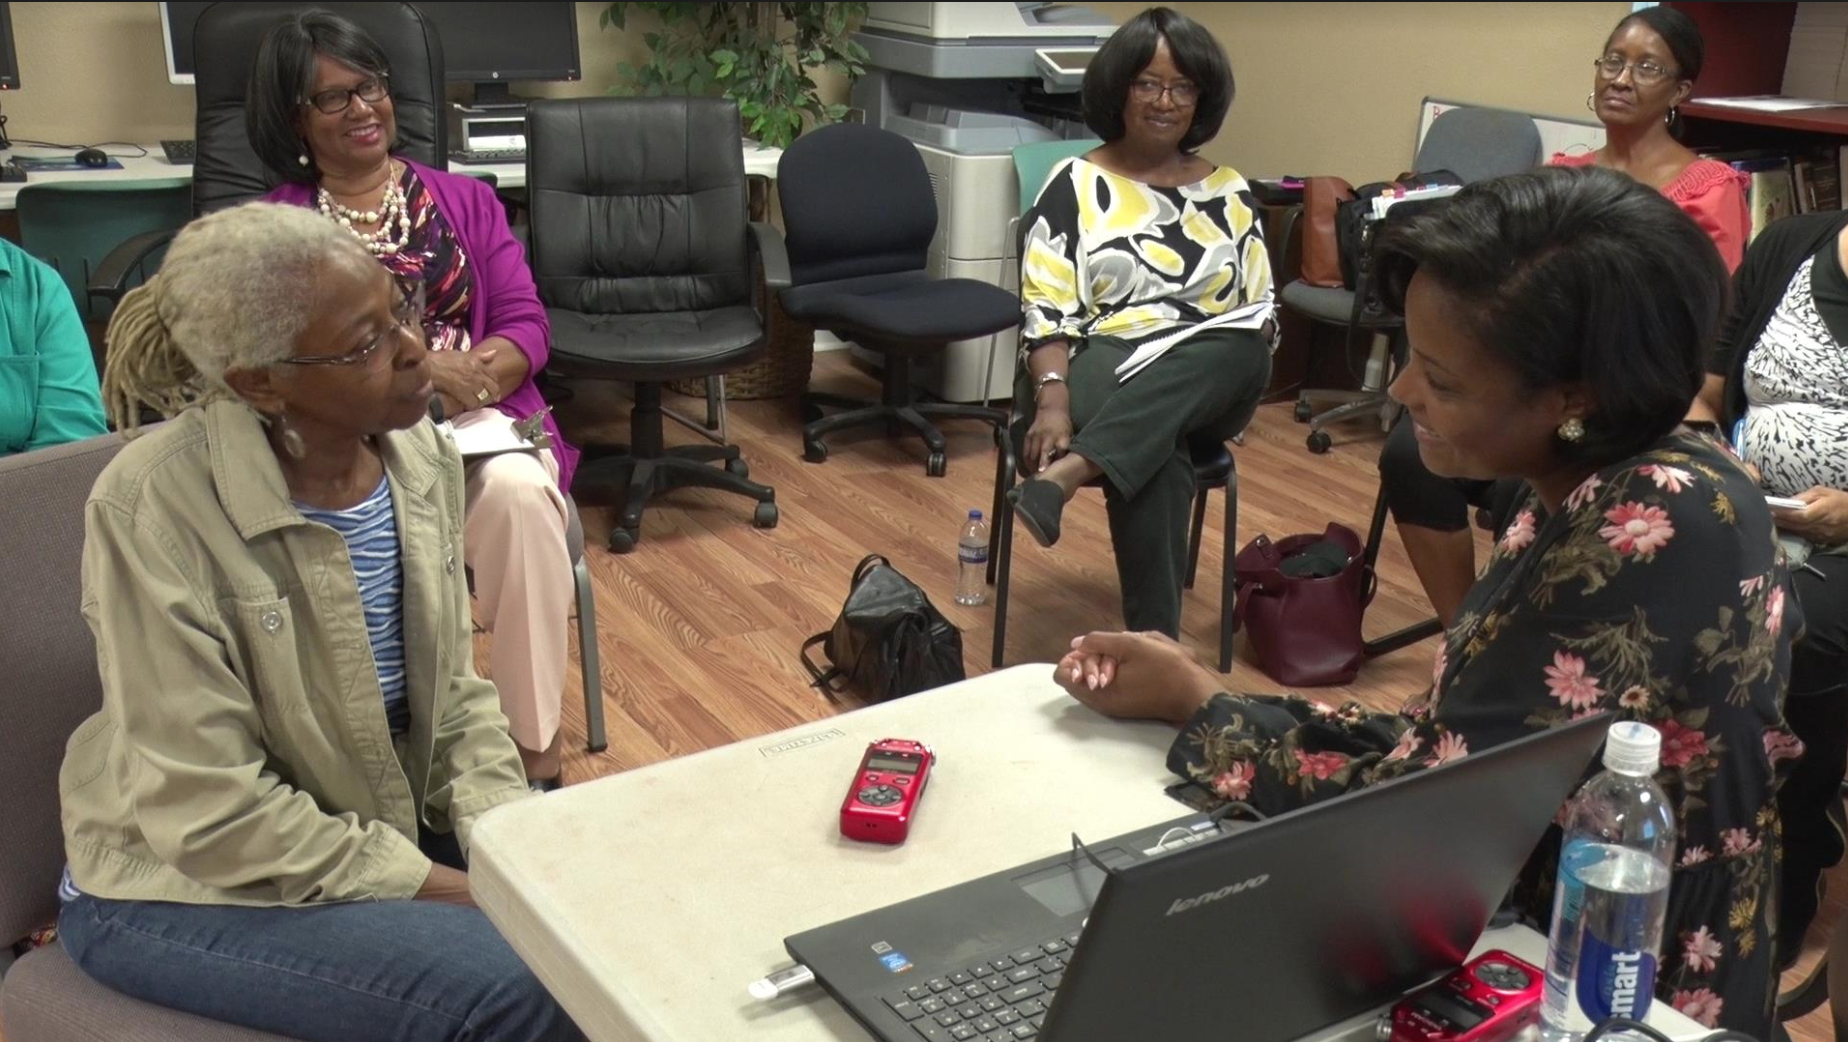 Group of African American women-presenting people sitting in a circle--two of them at the center are conducting an oral history interview. An audio recorder and a laptop computer are sitting on the table between them.